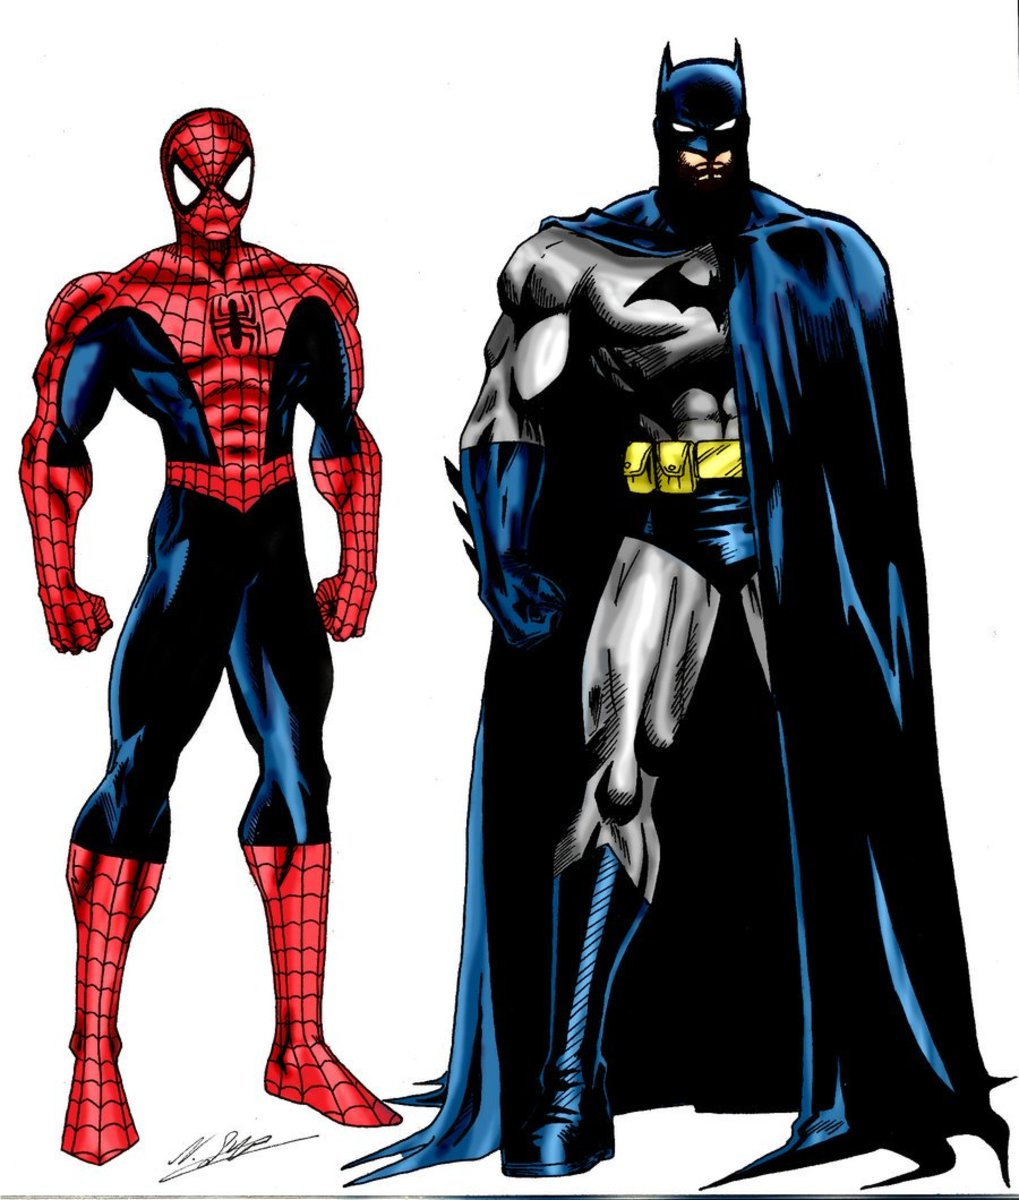 10 Reasons Why Spiderman Is Better Than Batman